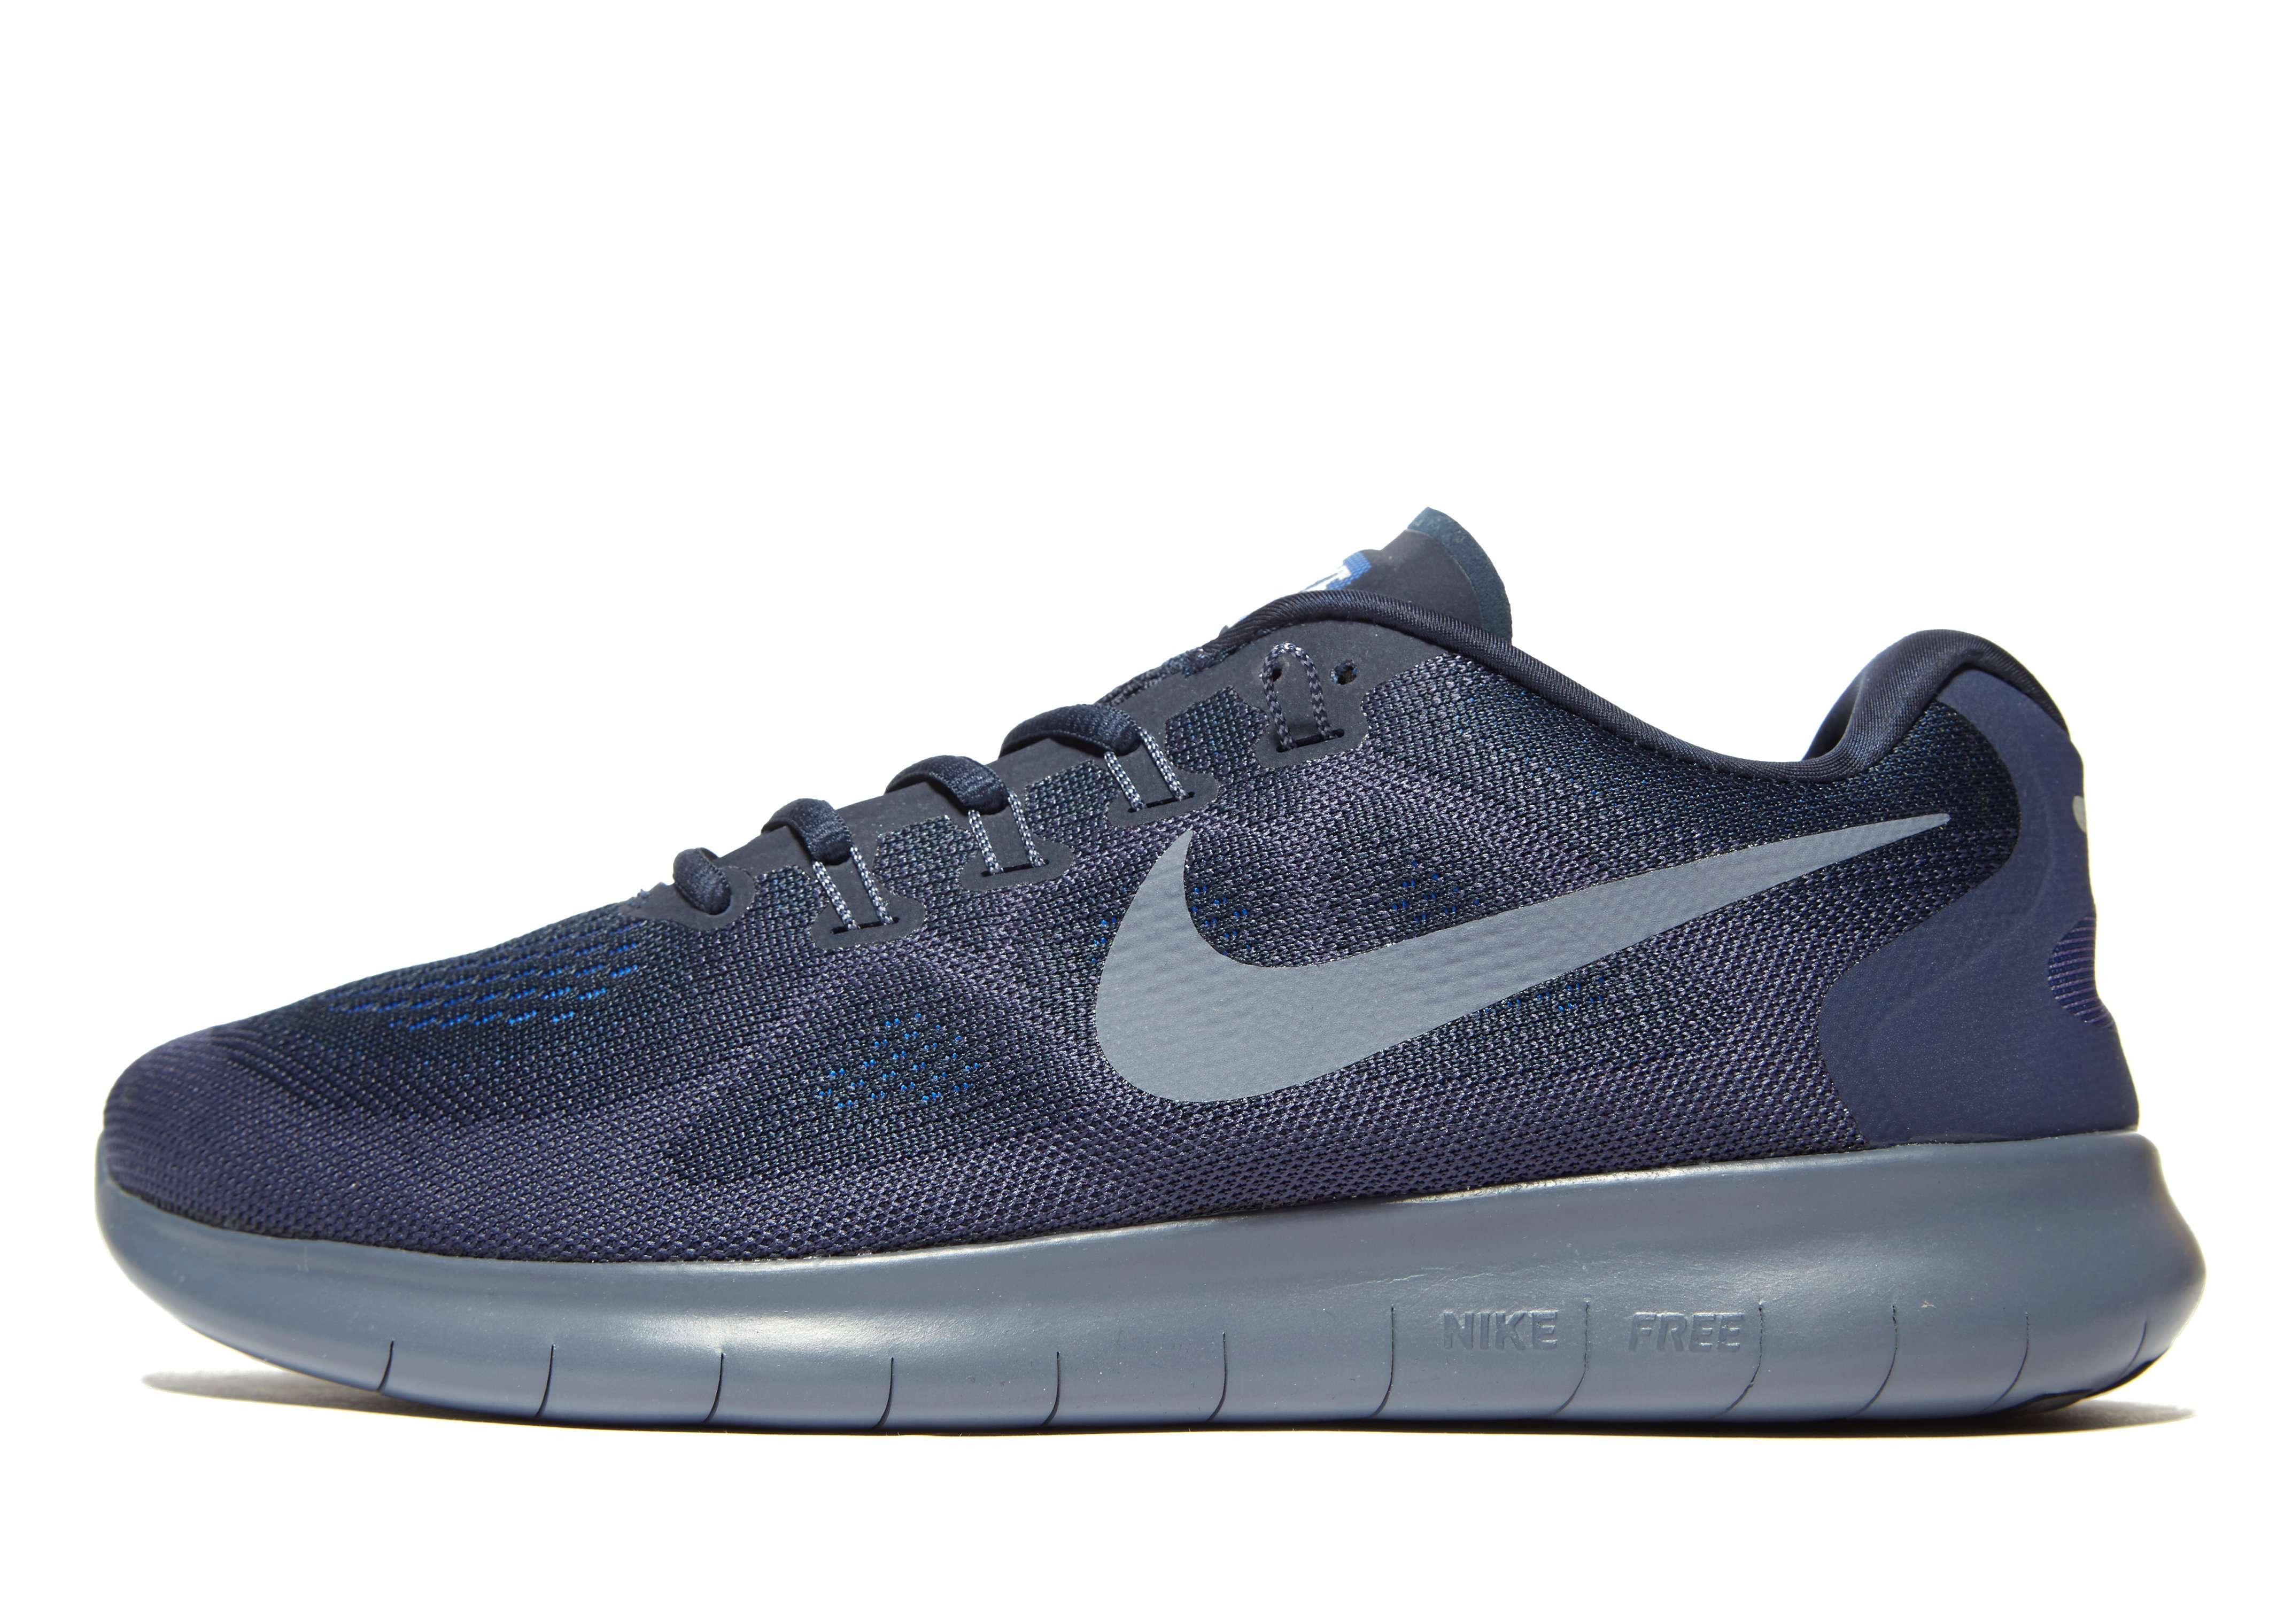 Nike Free RN - Men's Trainers - Blue 010358